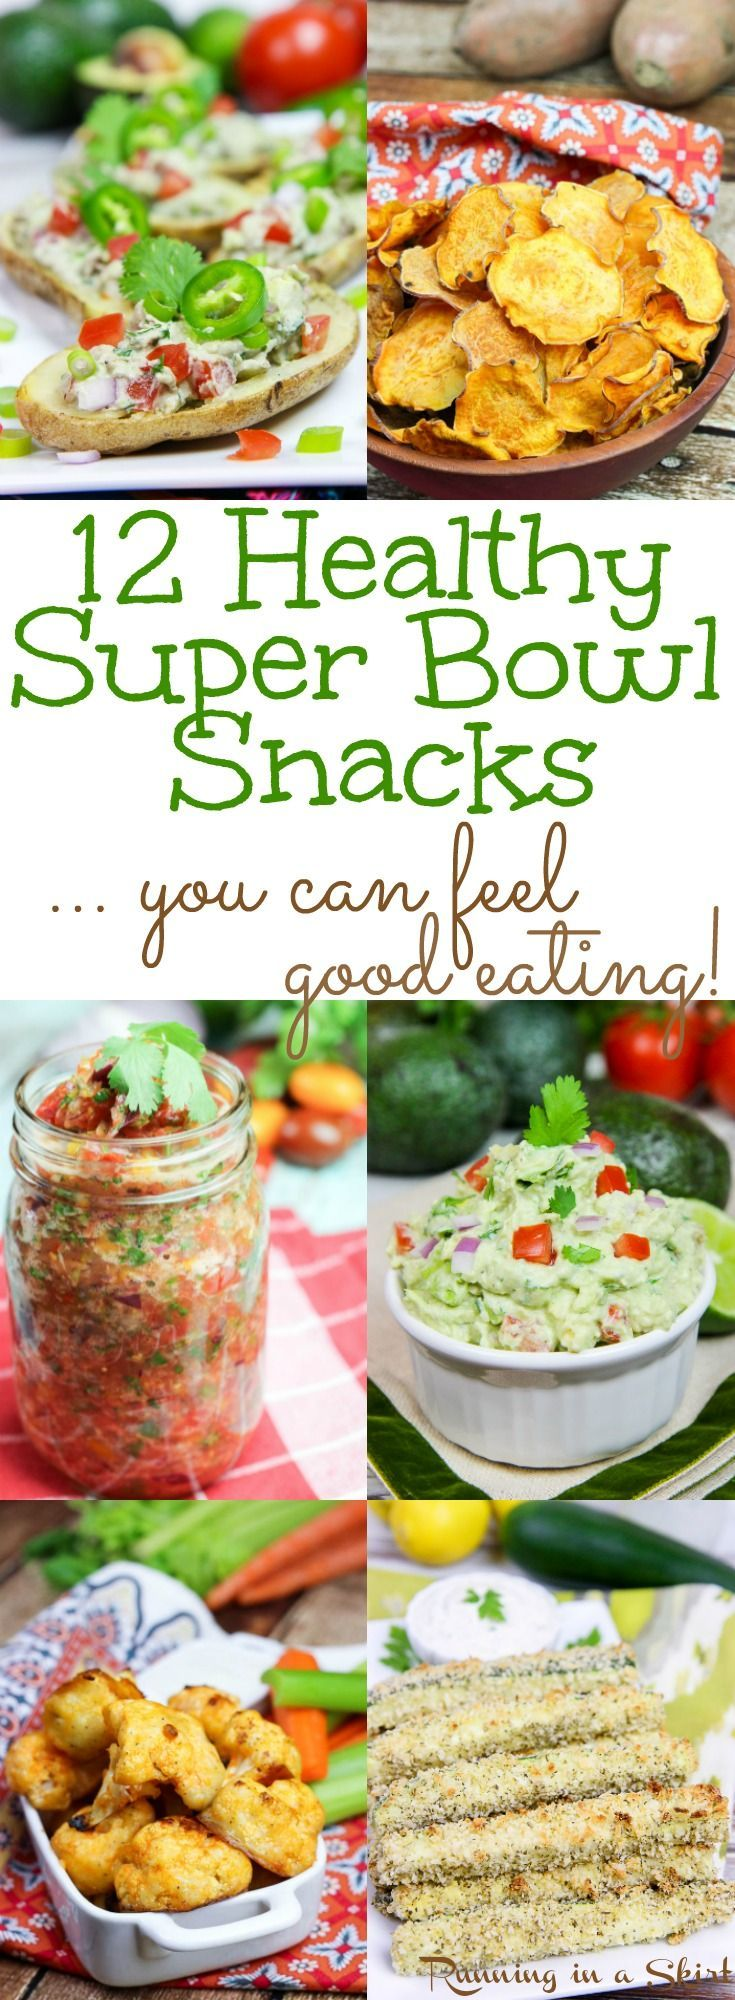 12 Healthy Super Bowl Snacks. These are game day recipes